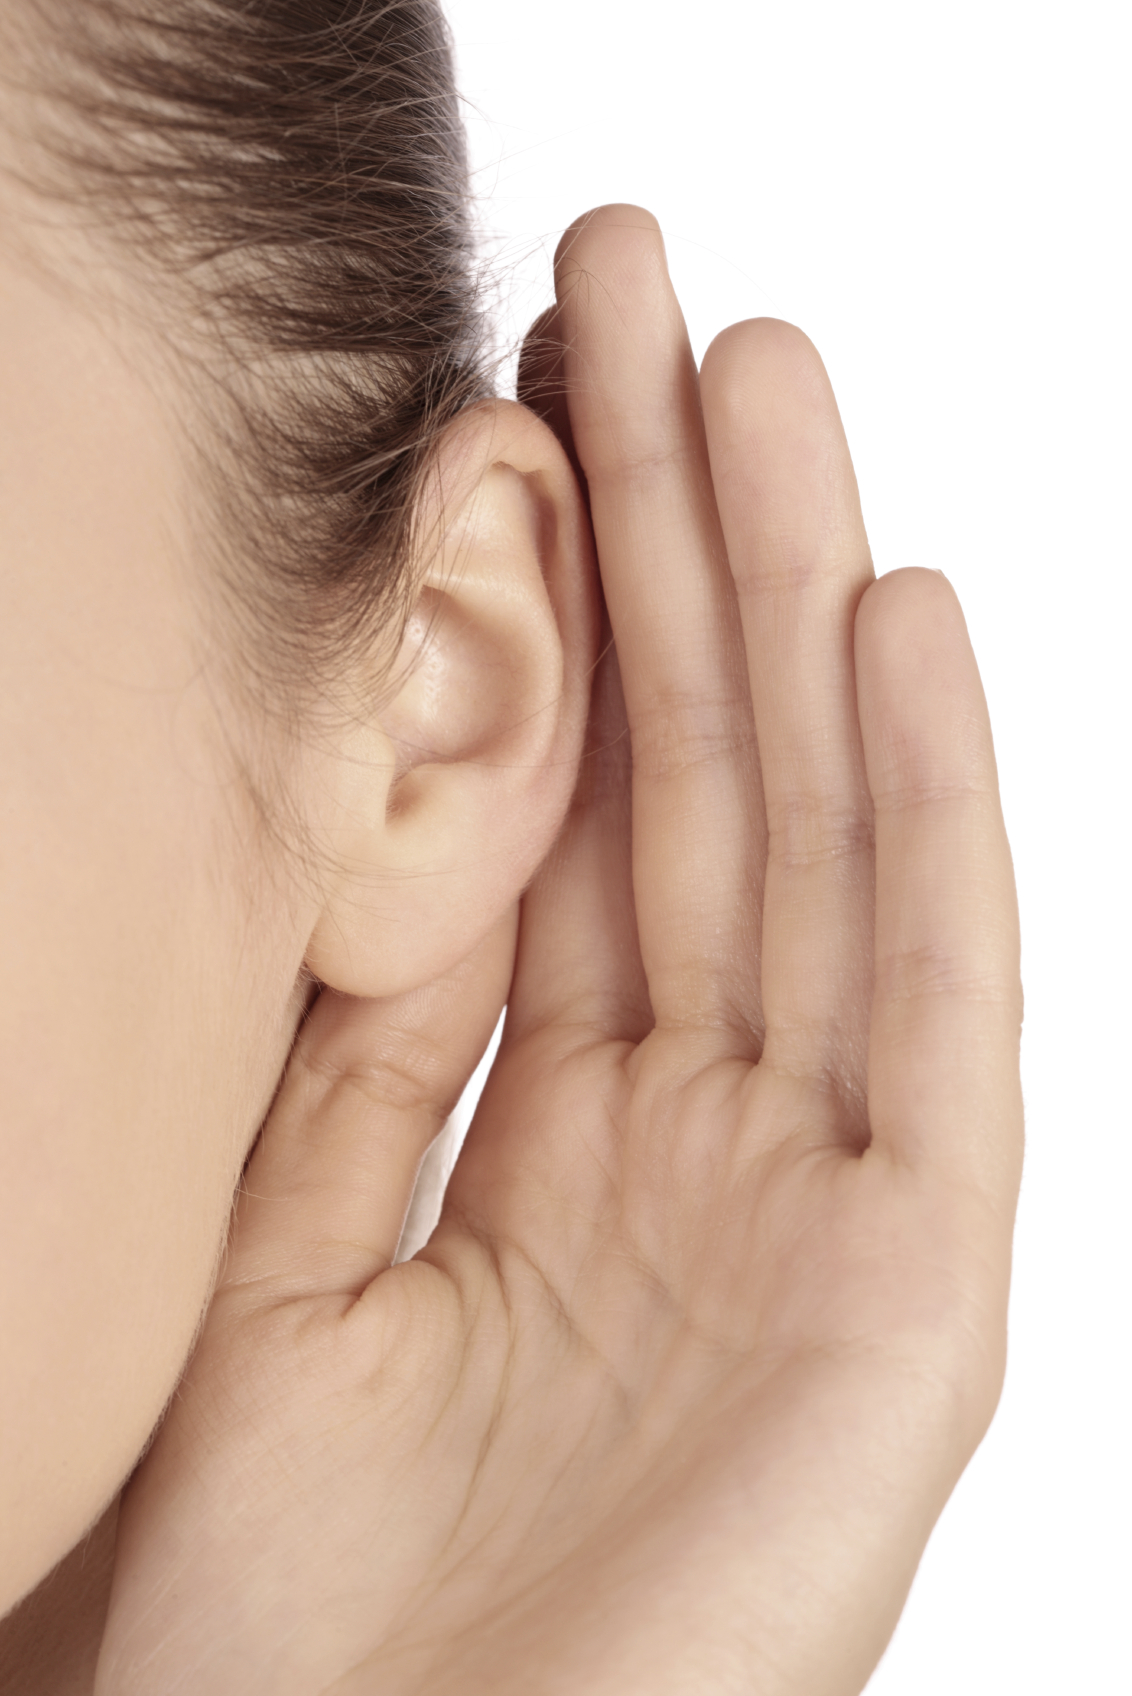 hand with ear cuped.